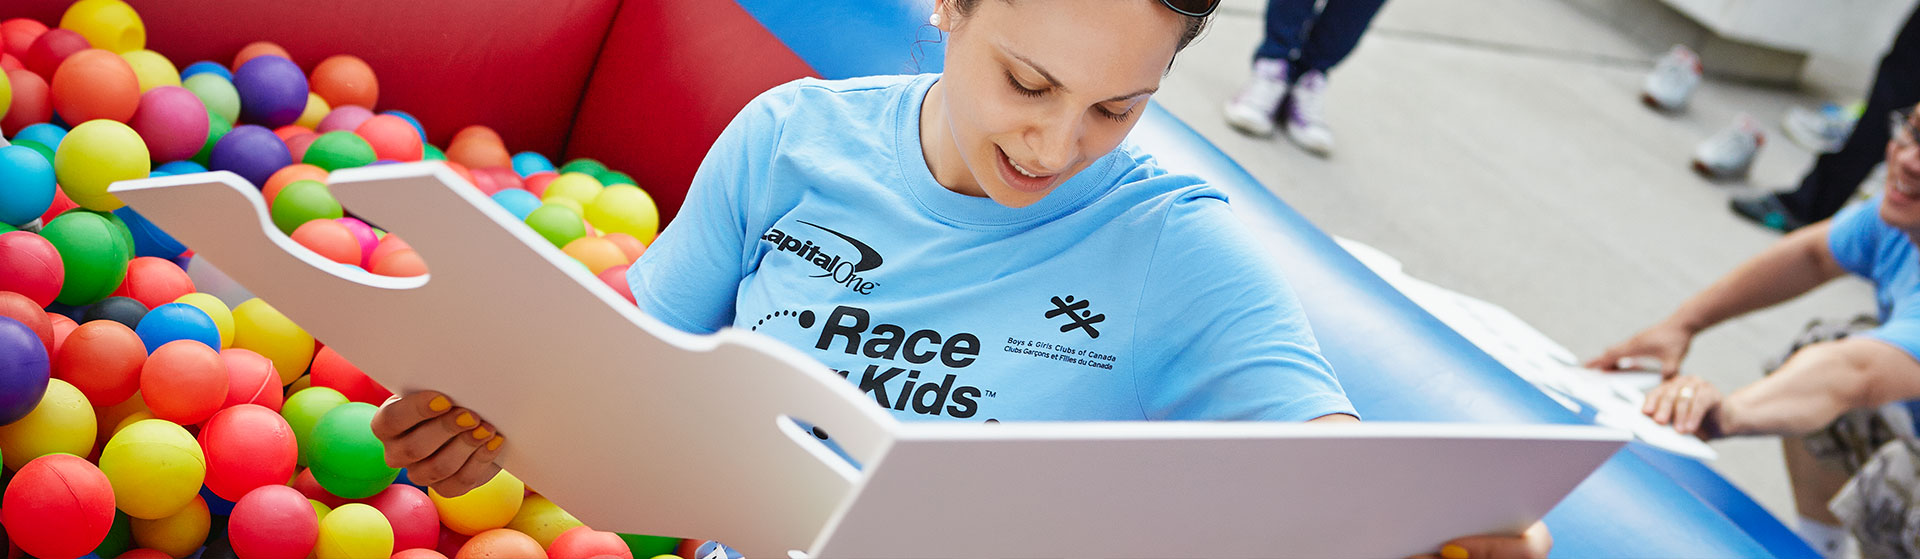 Race for Kids - Overview